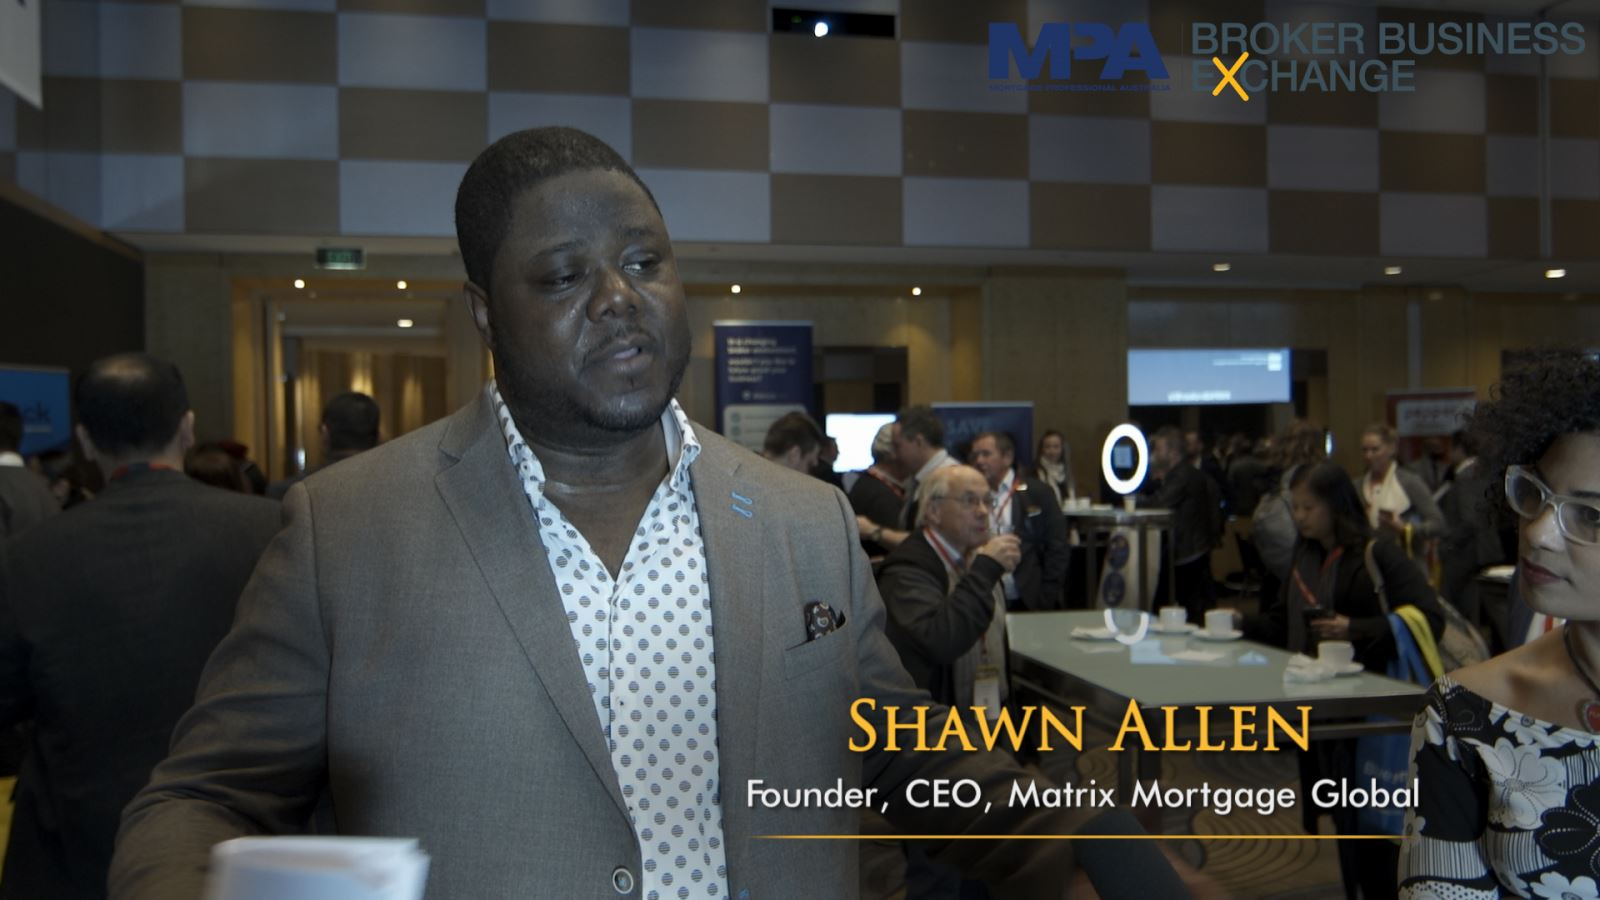 Broker Business Exchange 2019: International keynote Shawn Allen shares his insights